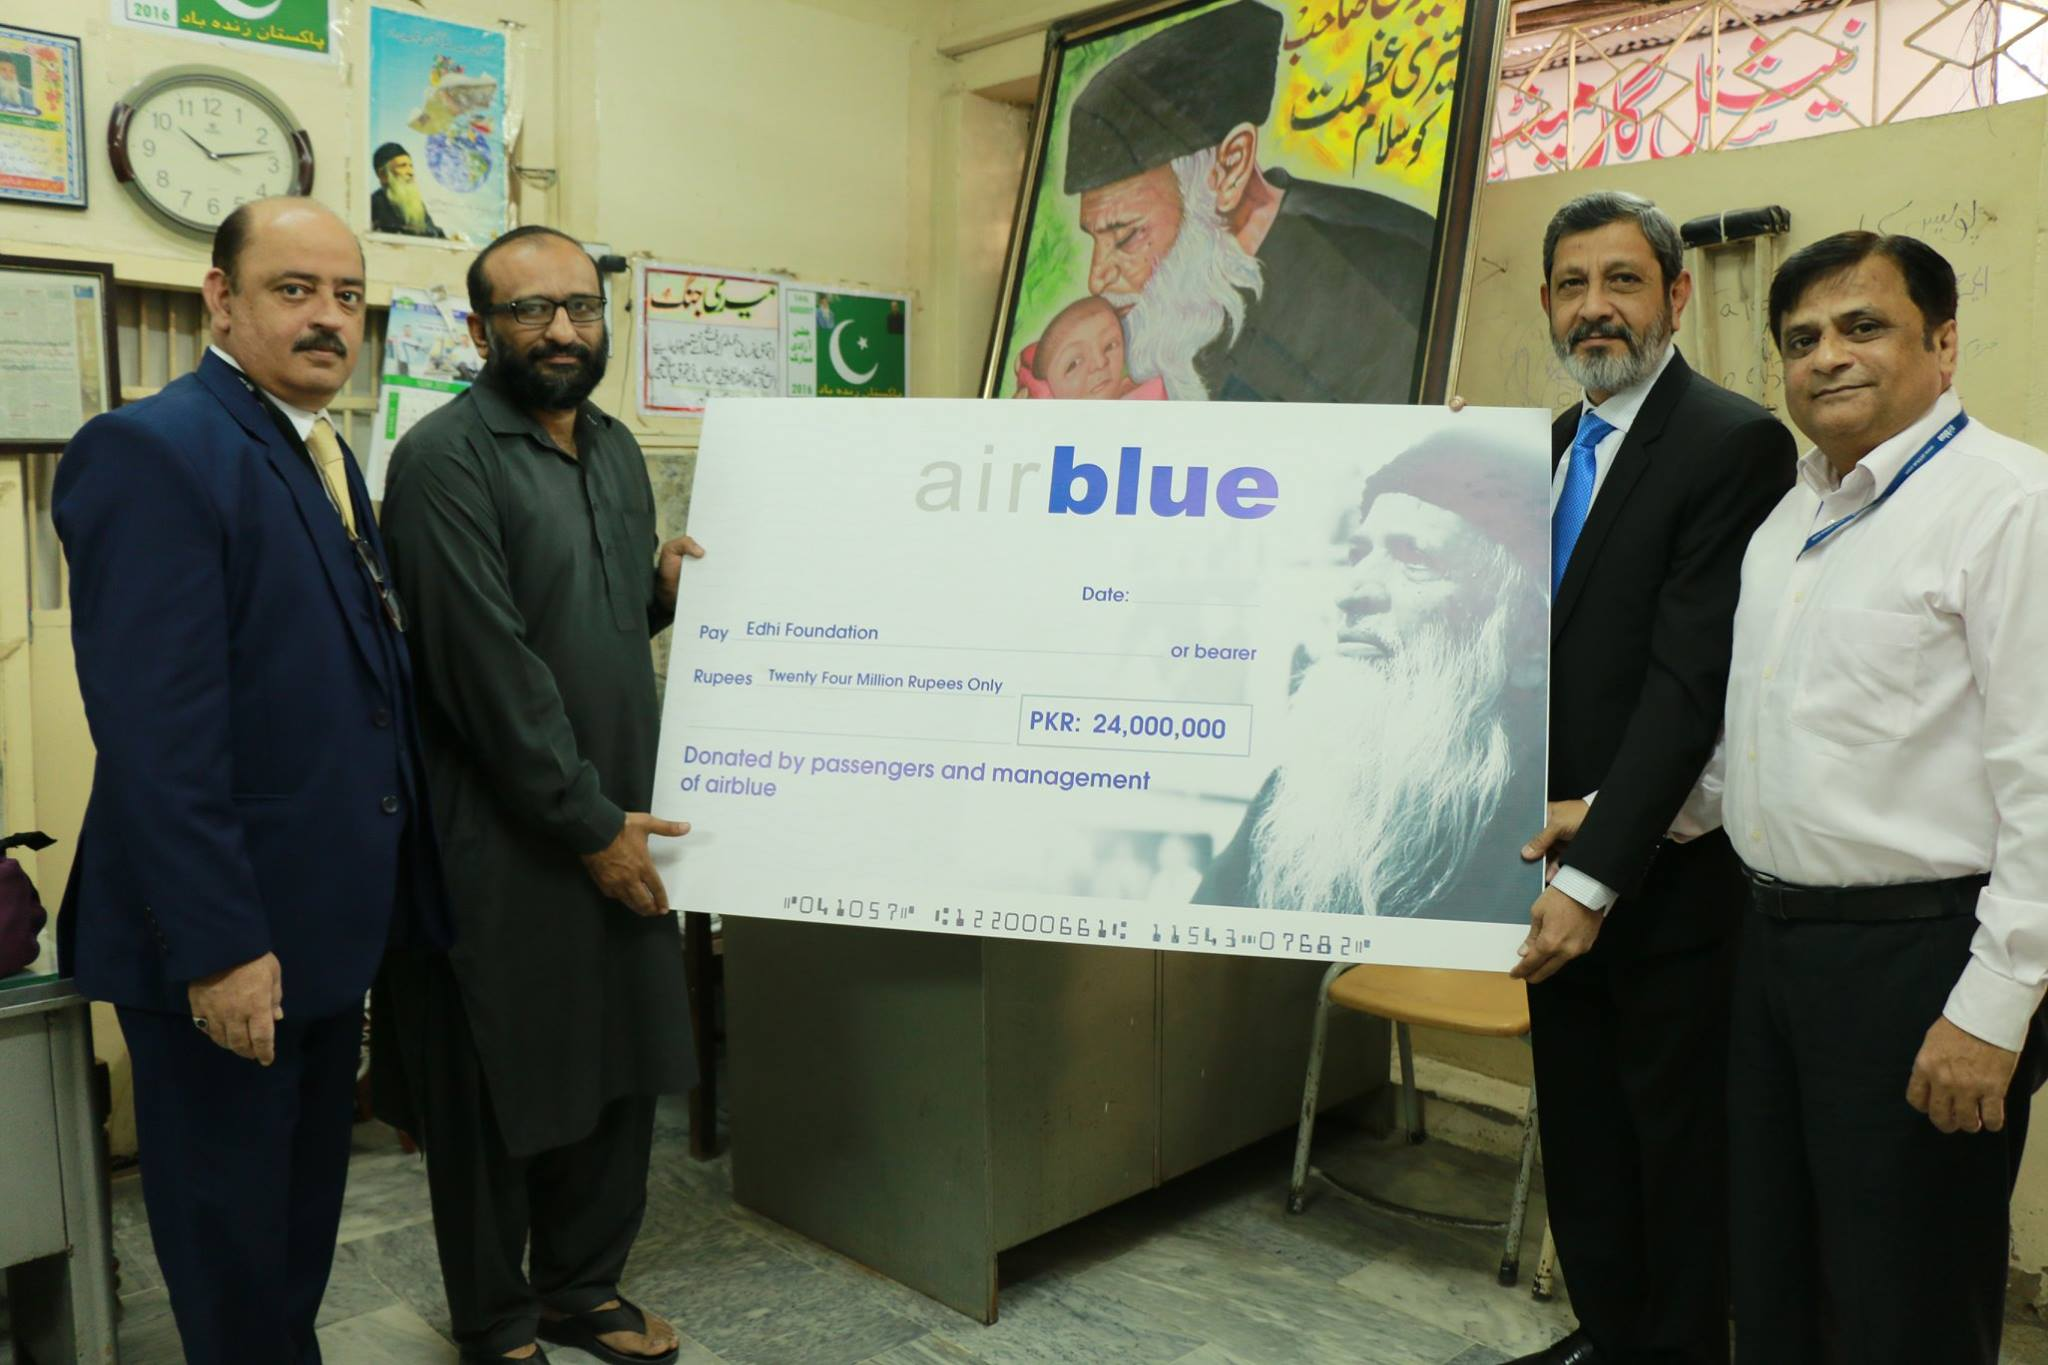 Airblue Would Like To Thank Its Pengers For The Trust Bestowed On And Support Cause